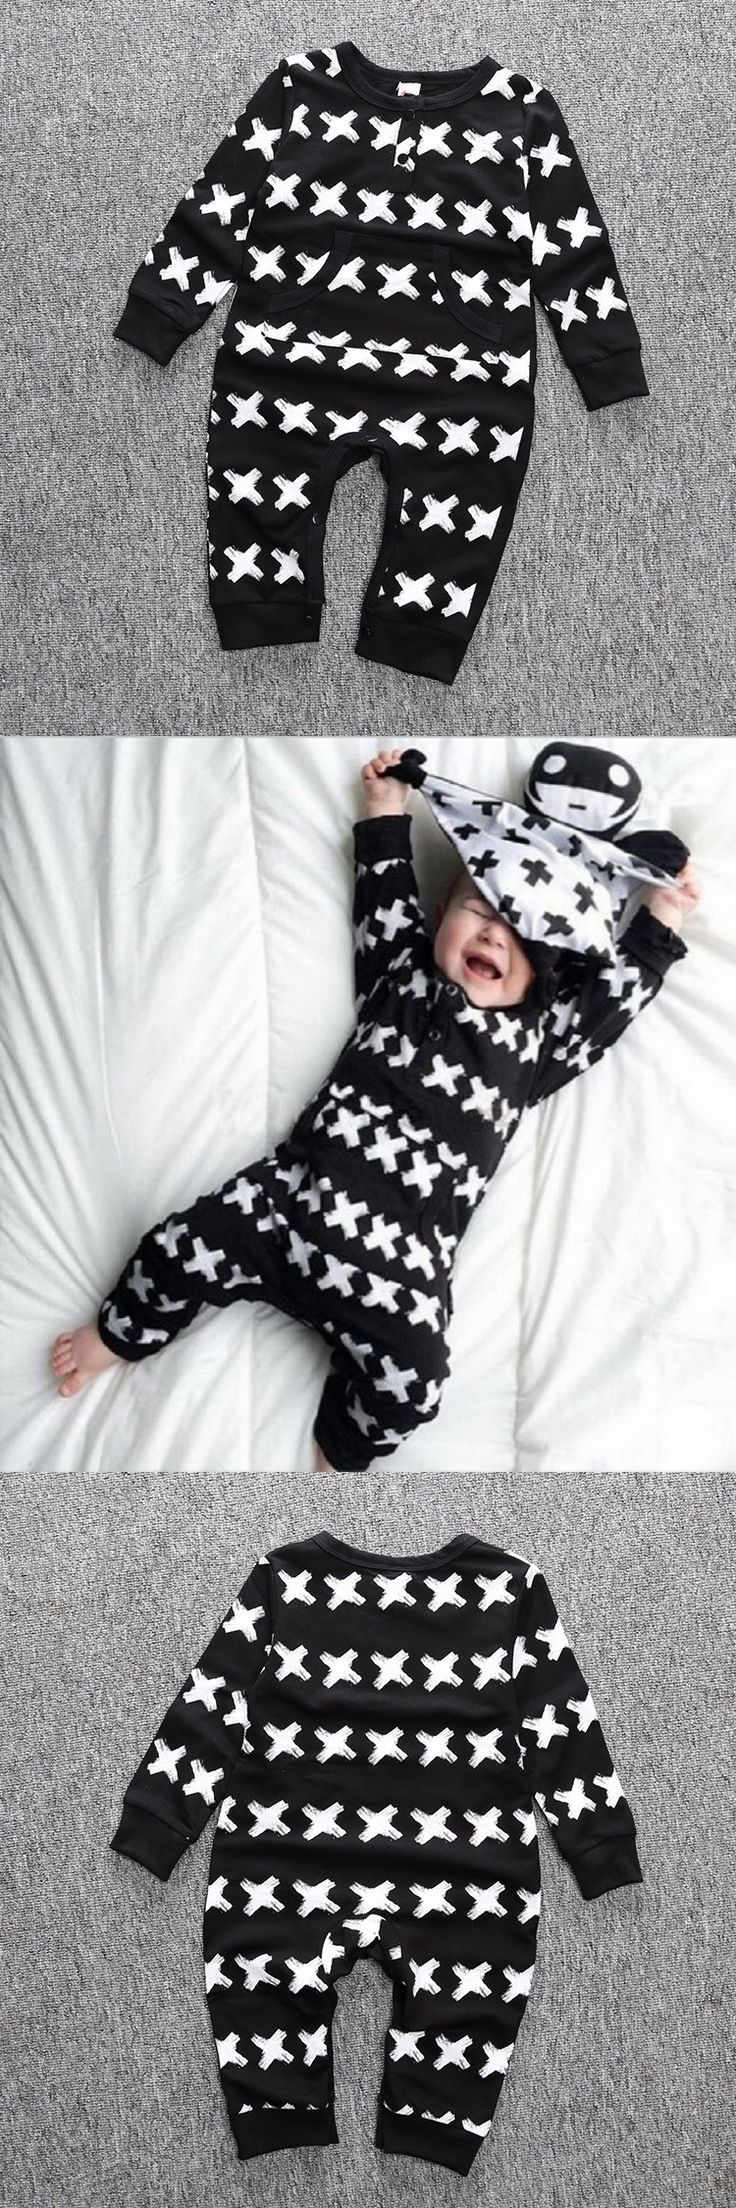 Newborn Baby Boy Girl Clothes Long Sleeve Cartoon Printed Jumpsuit Baby Romper Bebek Giyim Christmas Similar Carter Clothing 014